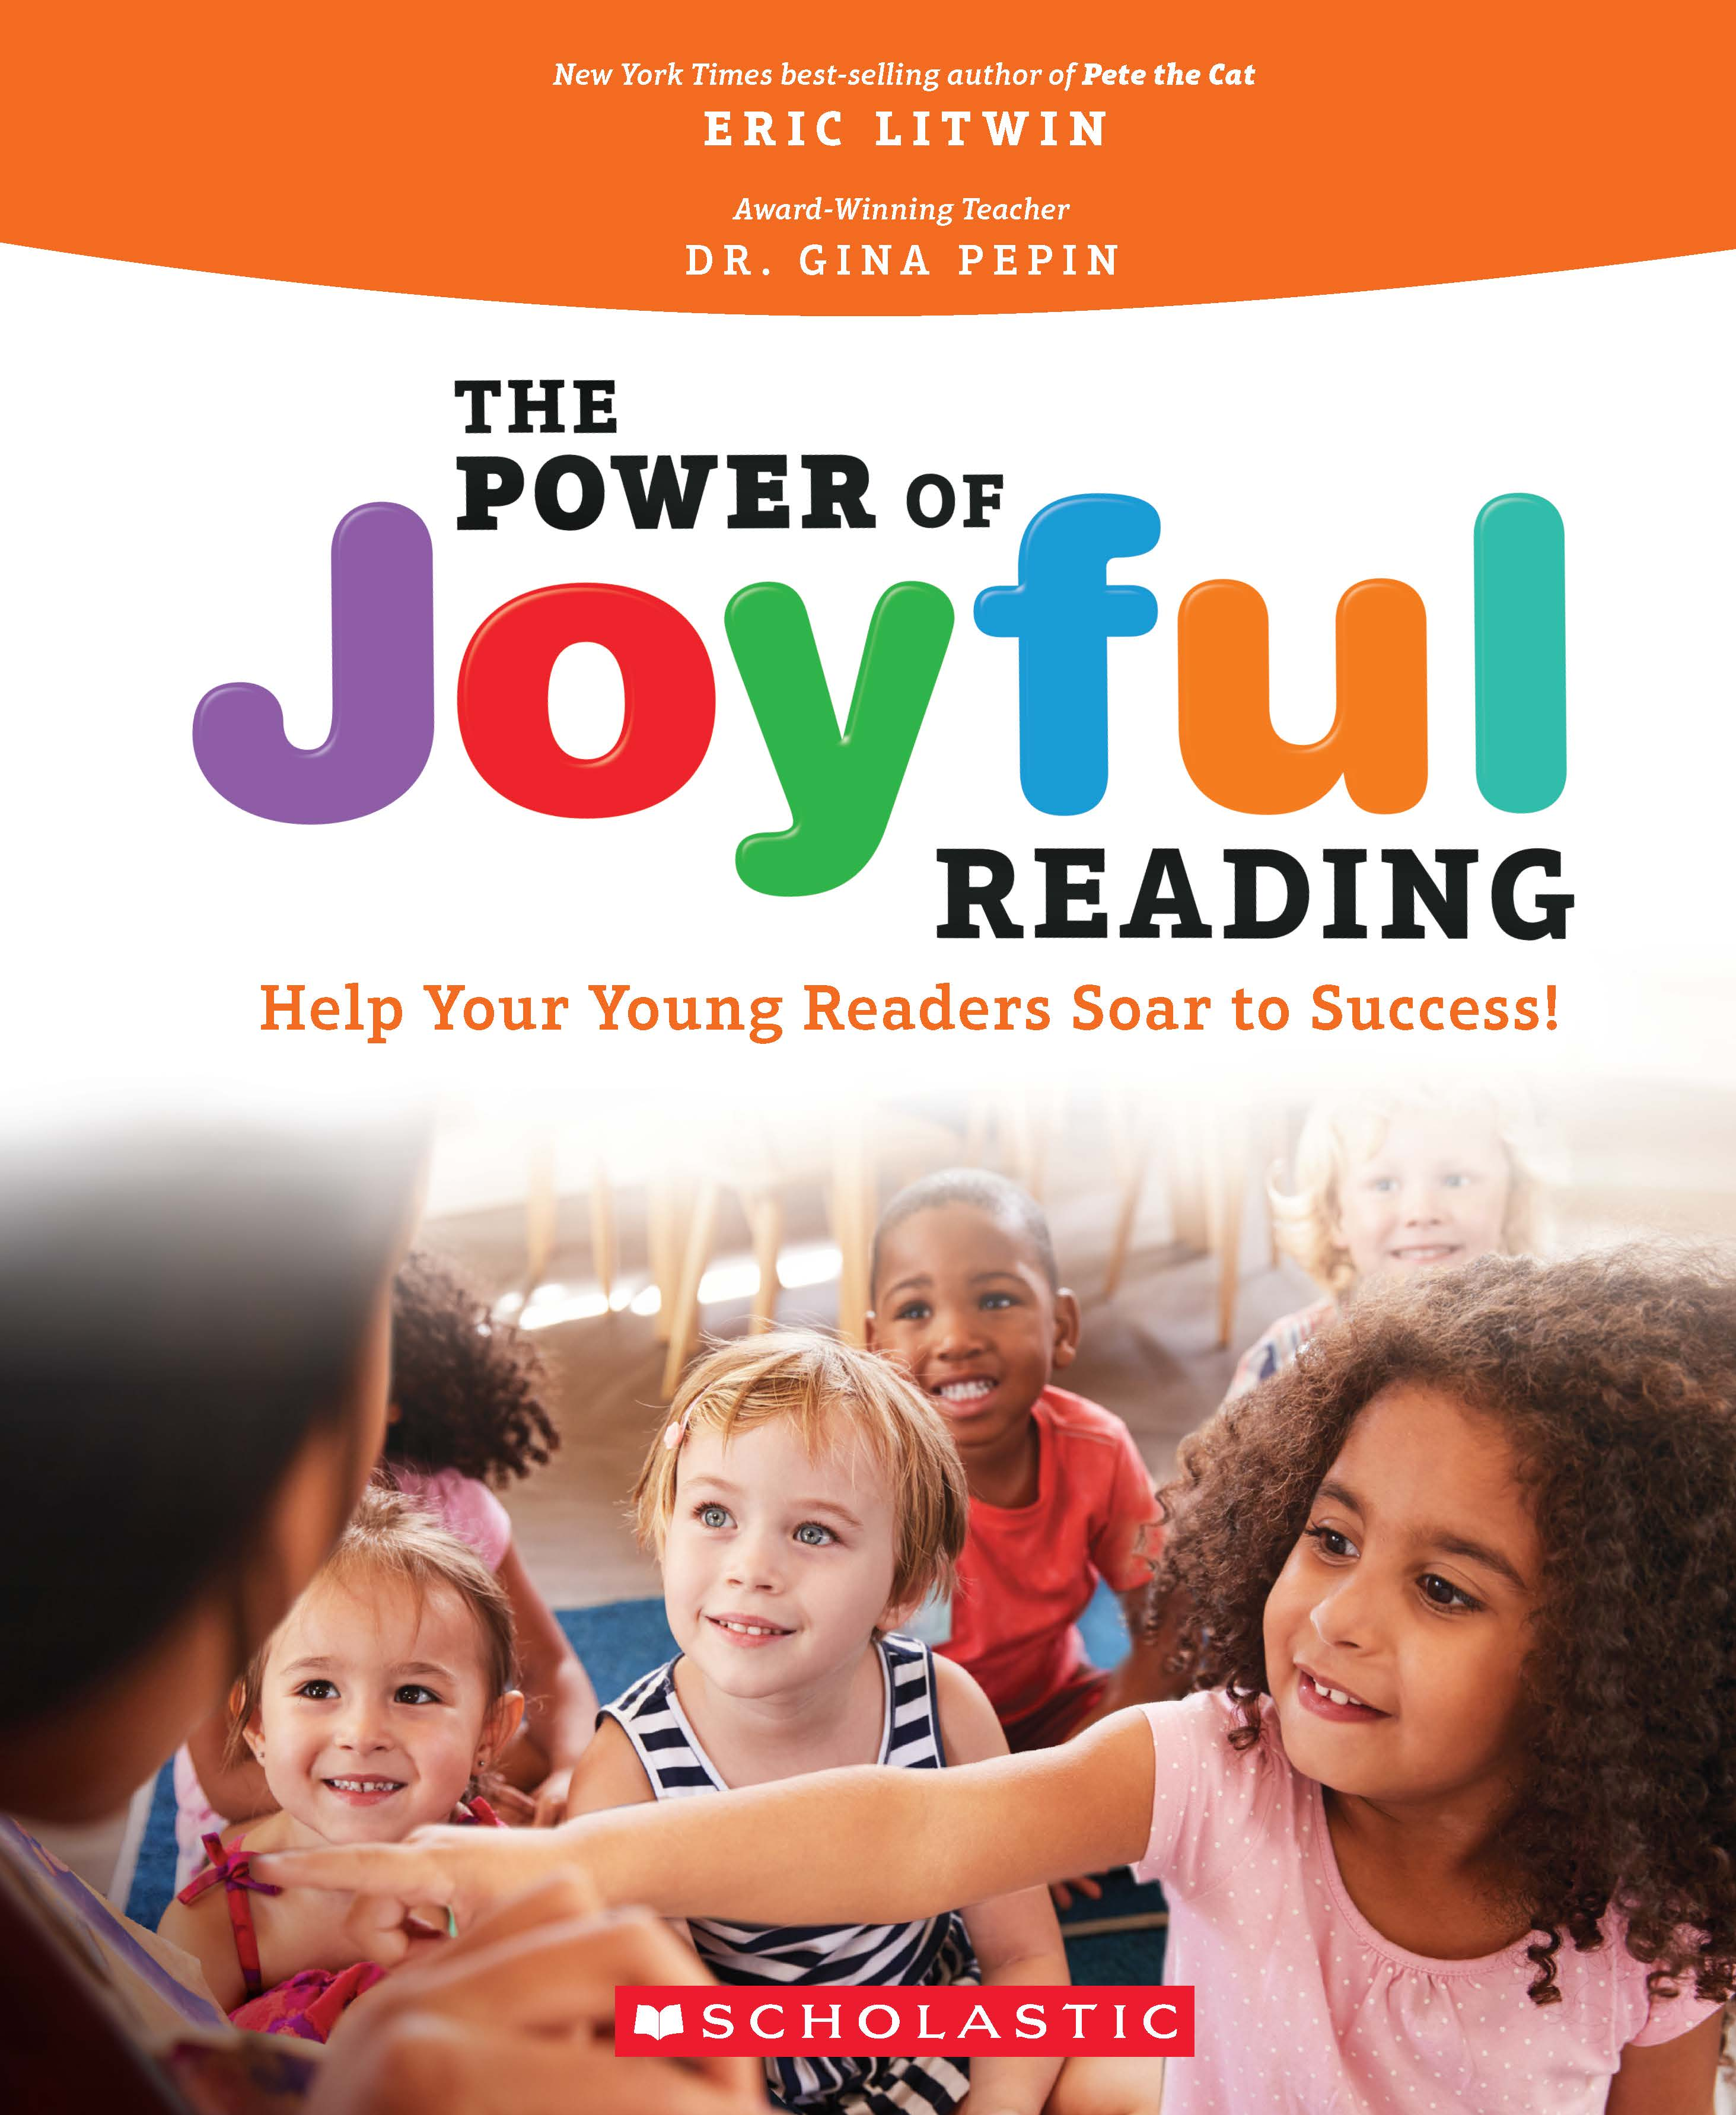 The Power of Joyful Reading: Help Your Young Readers Soar to Success!: Help Your Young Readers Soar to Success!